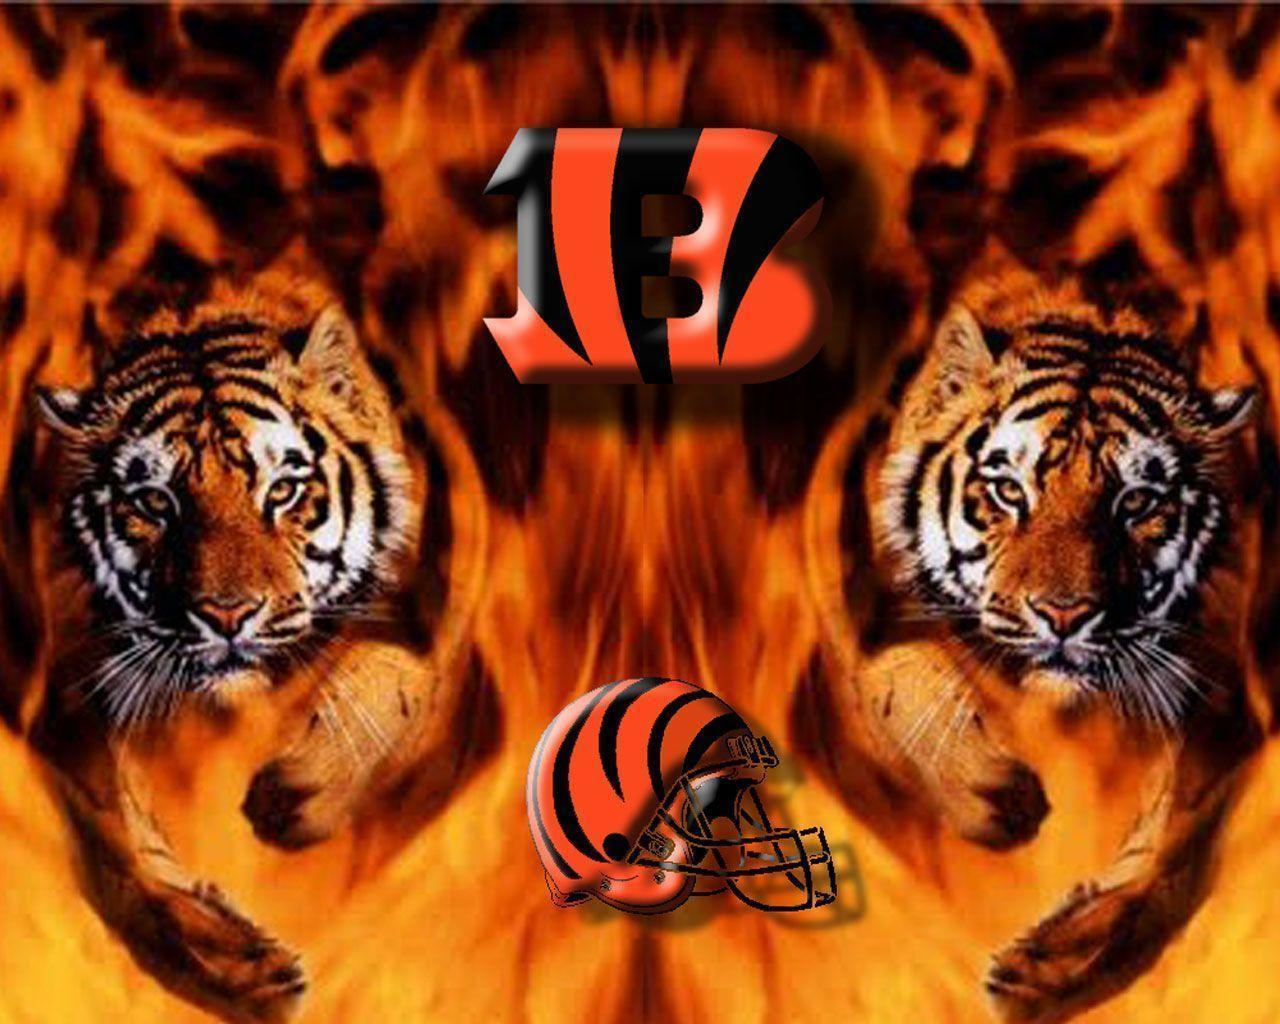 Cincinnati Bengals Two Tigers Wallpaper Nfl 1280x1024PX ~ Bengals ...